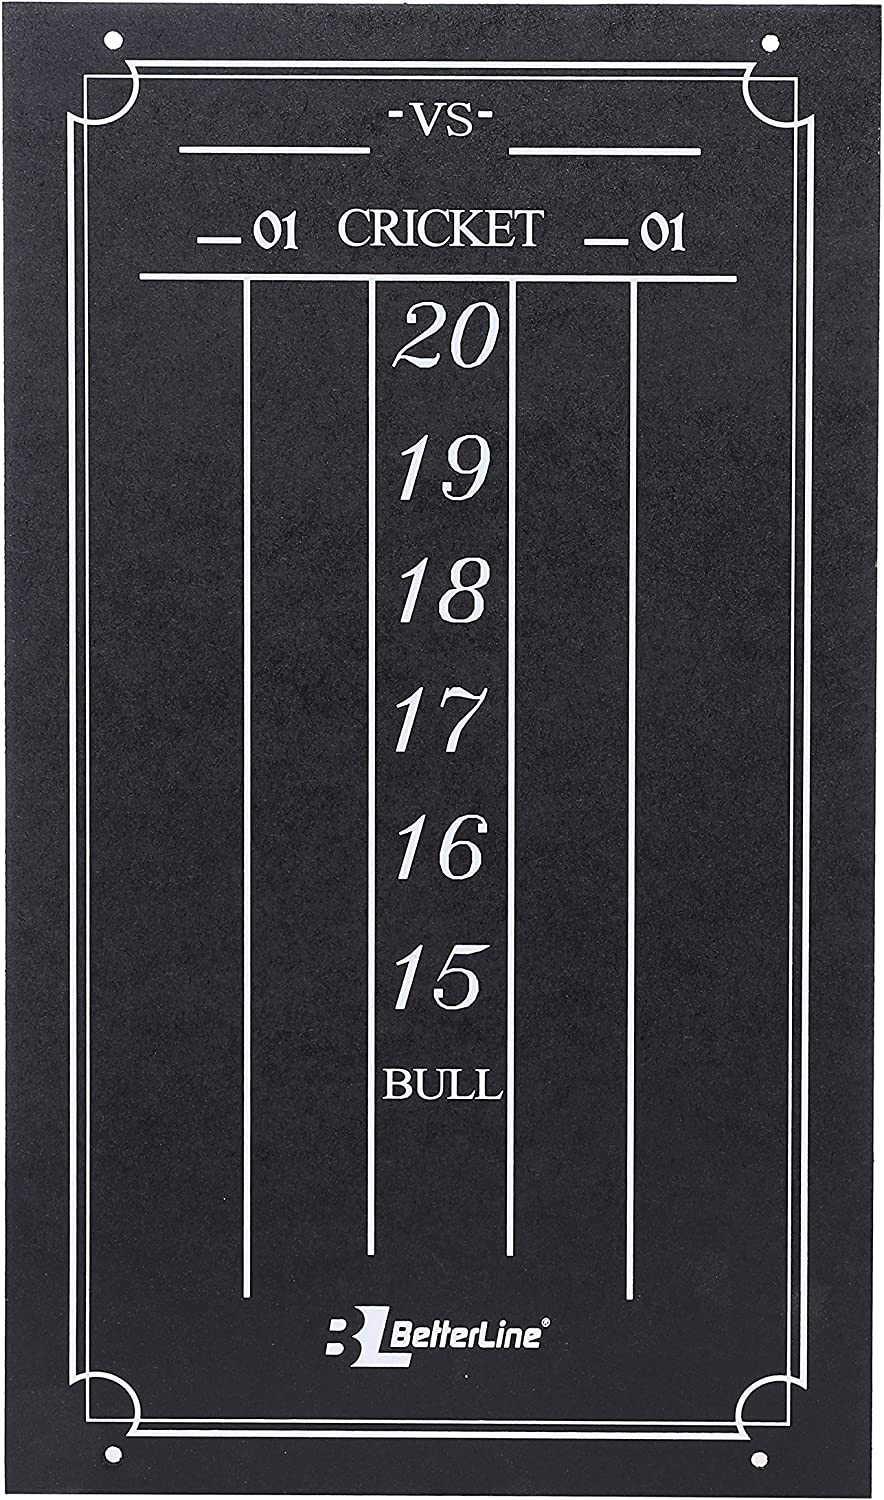 Amazon Com Betterline Large Professional Scoreboard Chalkboard For Cricket And 01 Darts Games 15 5 X 9 Inch 39 3 X 22 9 Cm Black Board Eraser And 2 Chalk Pieces Included Sports Outdoors